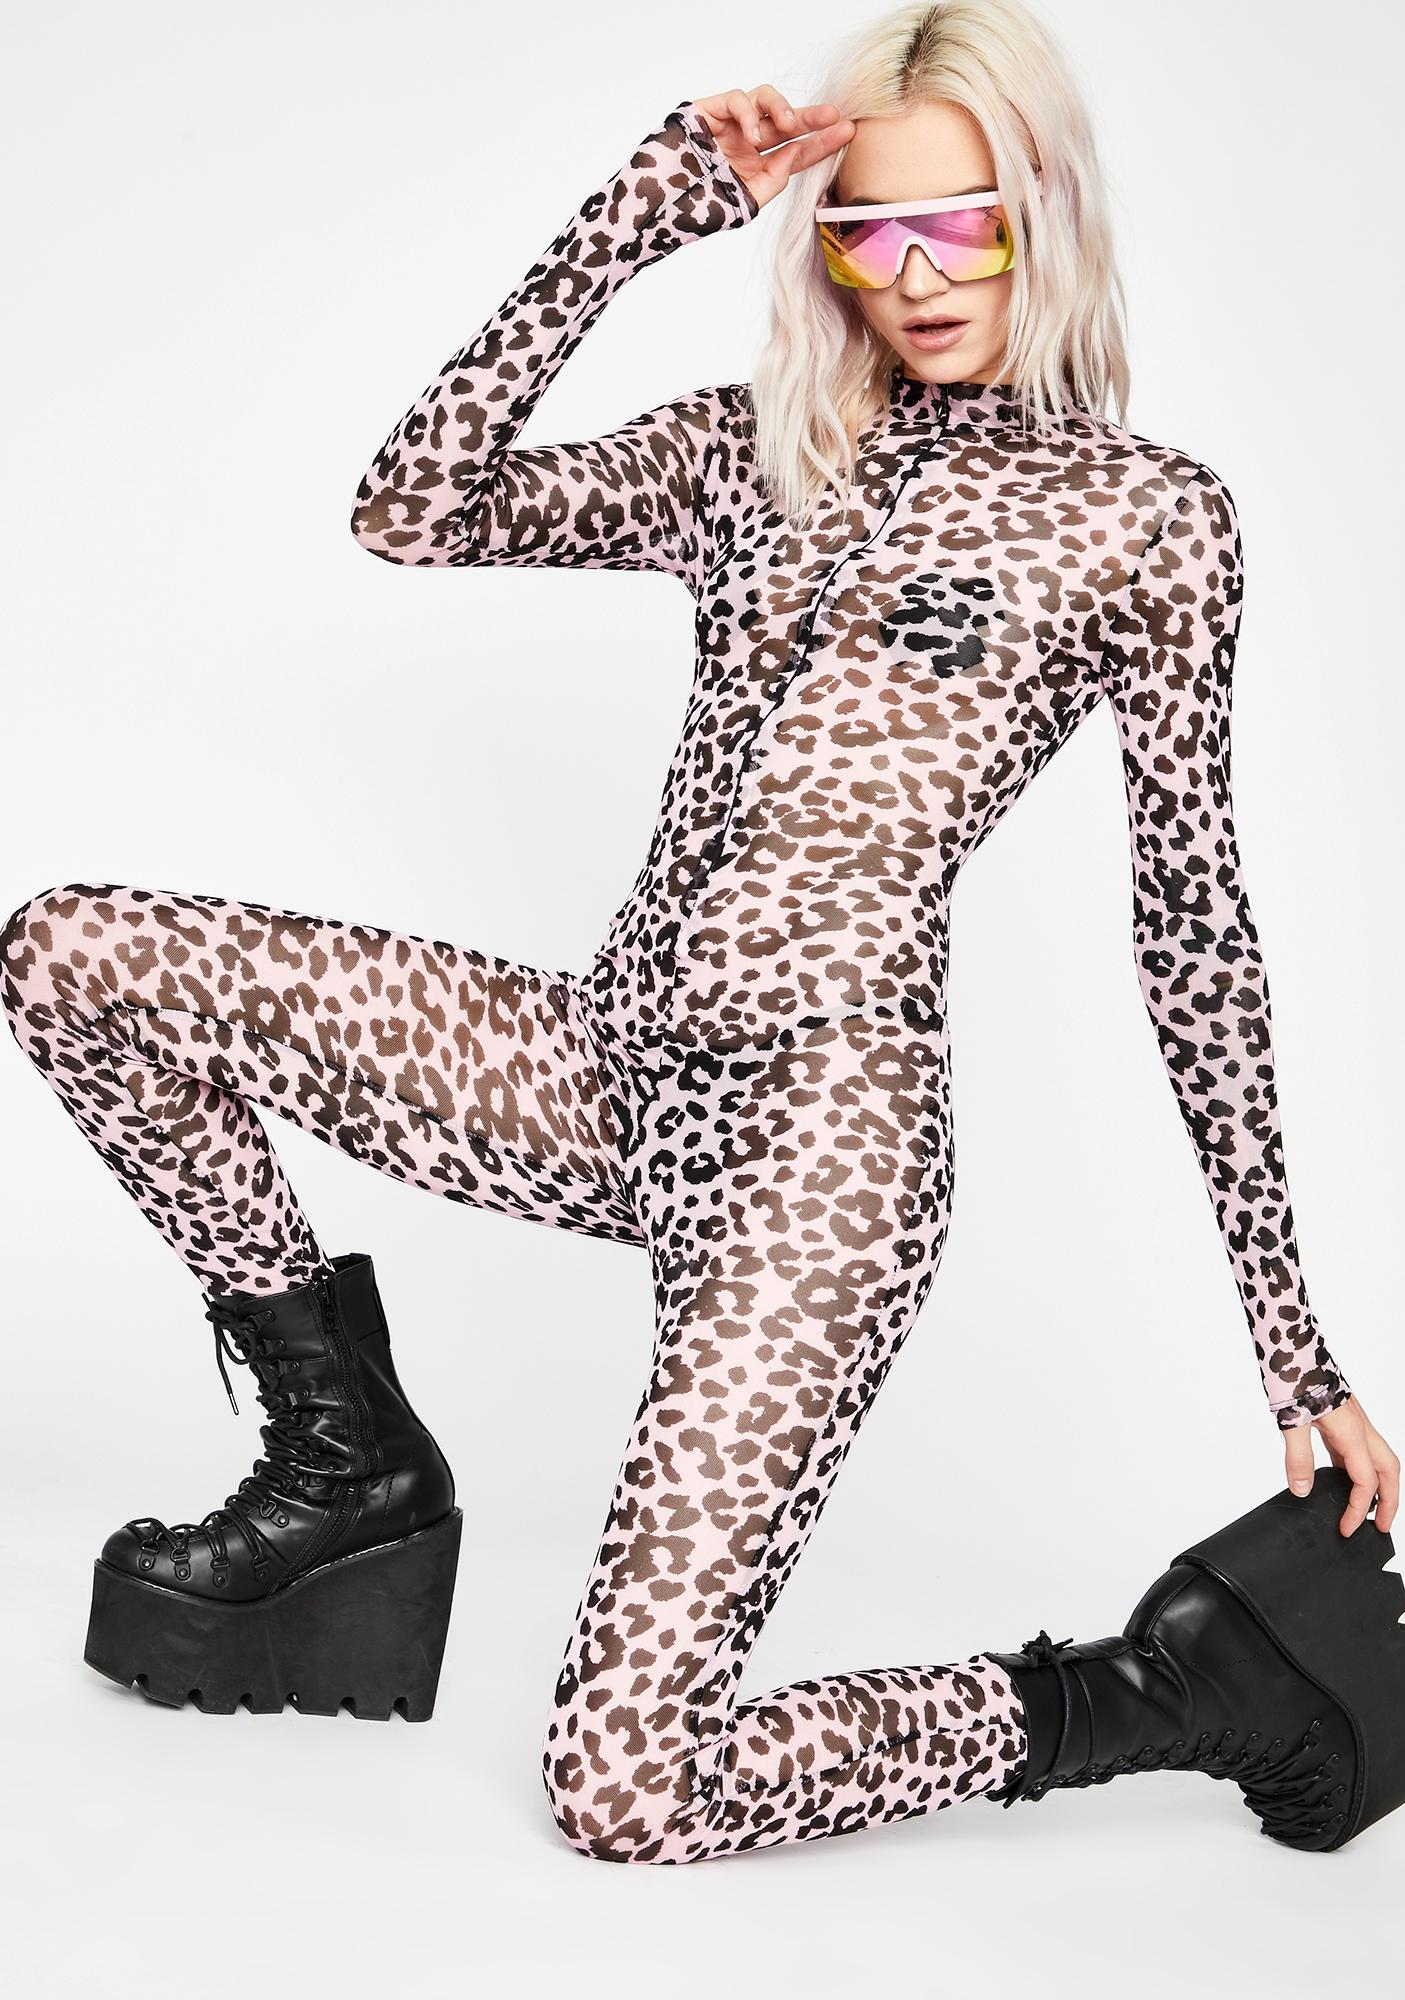 Kitty Business Mesh Catsuit